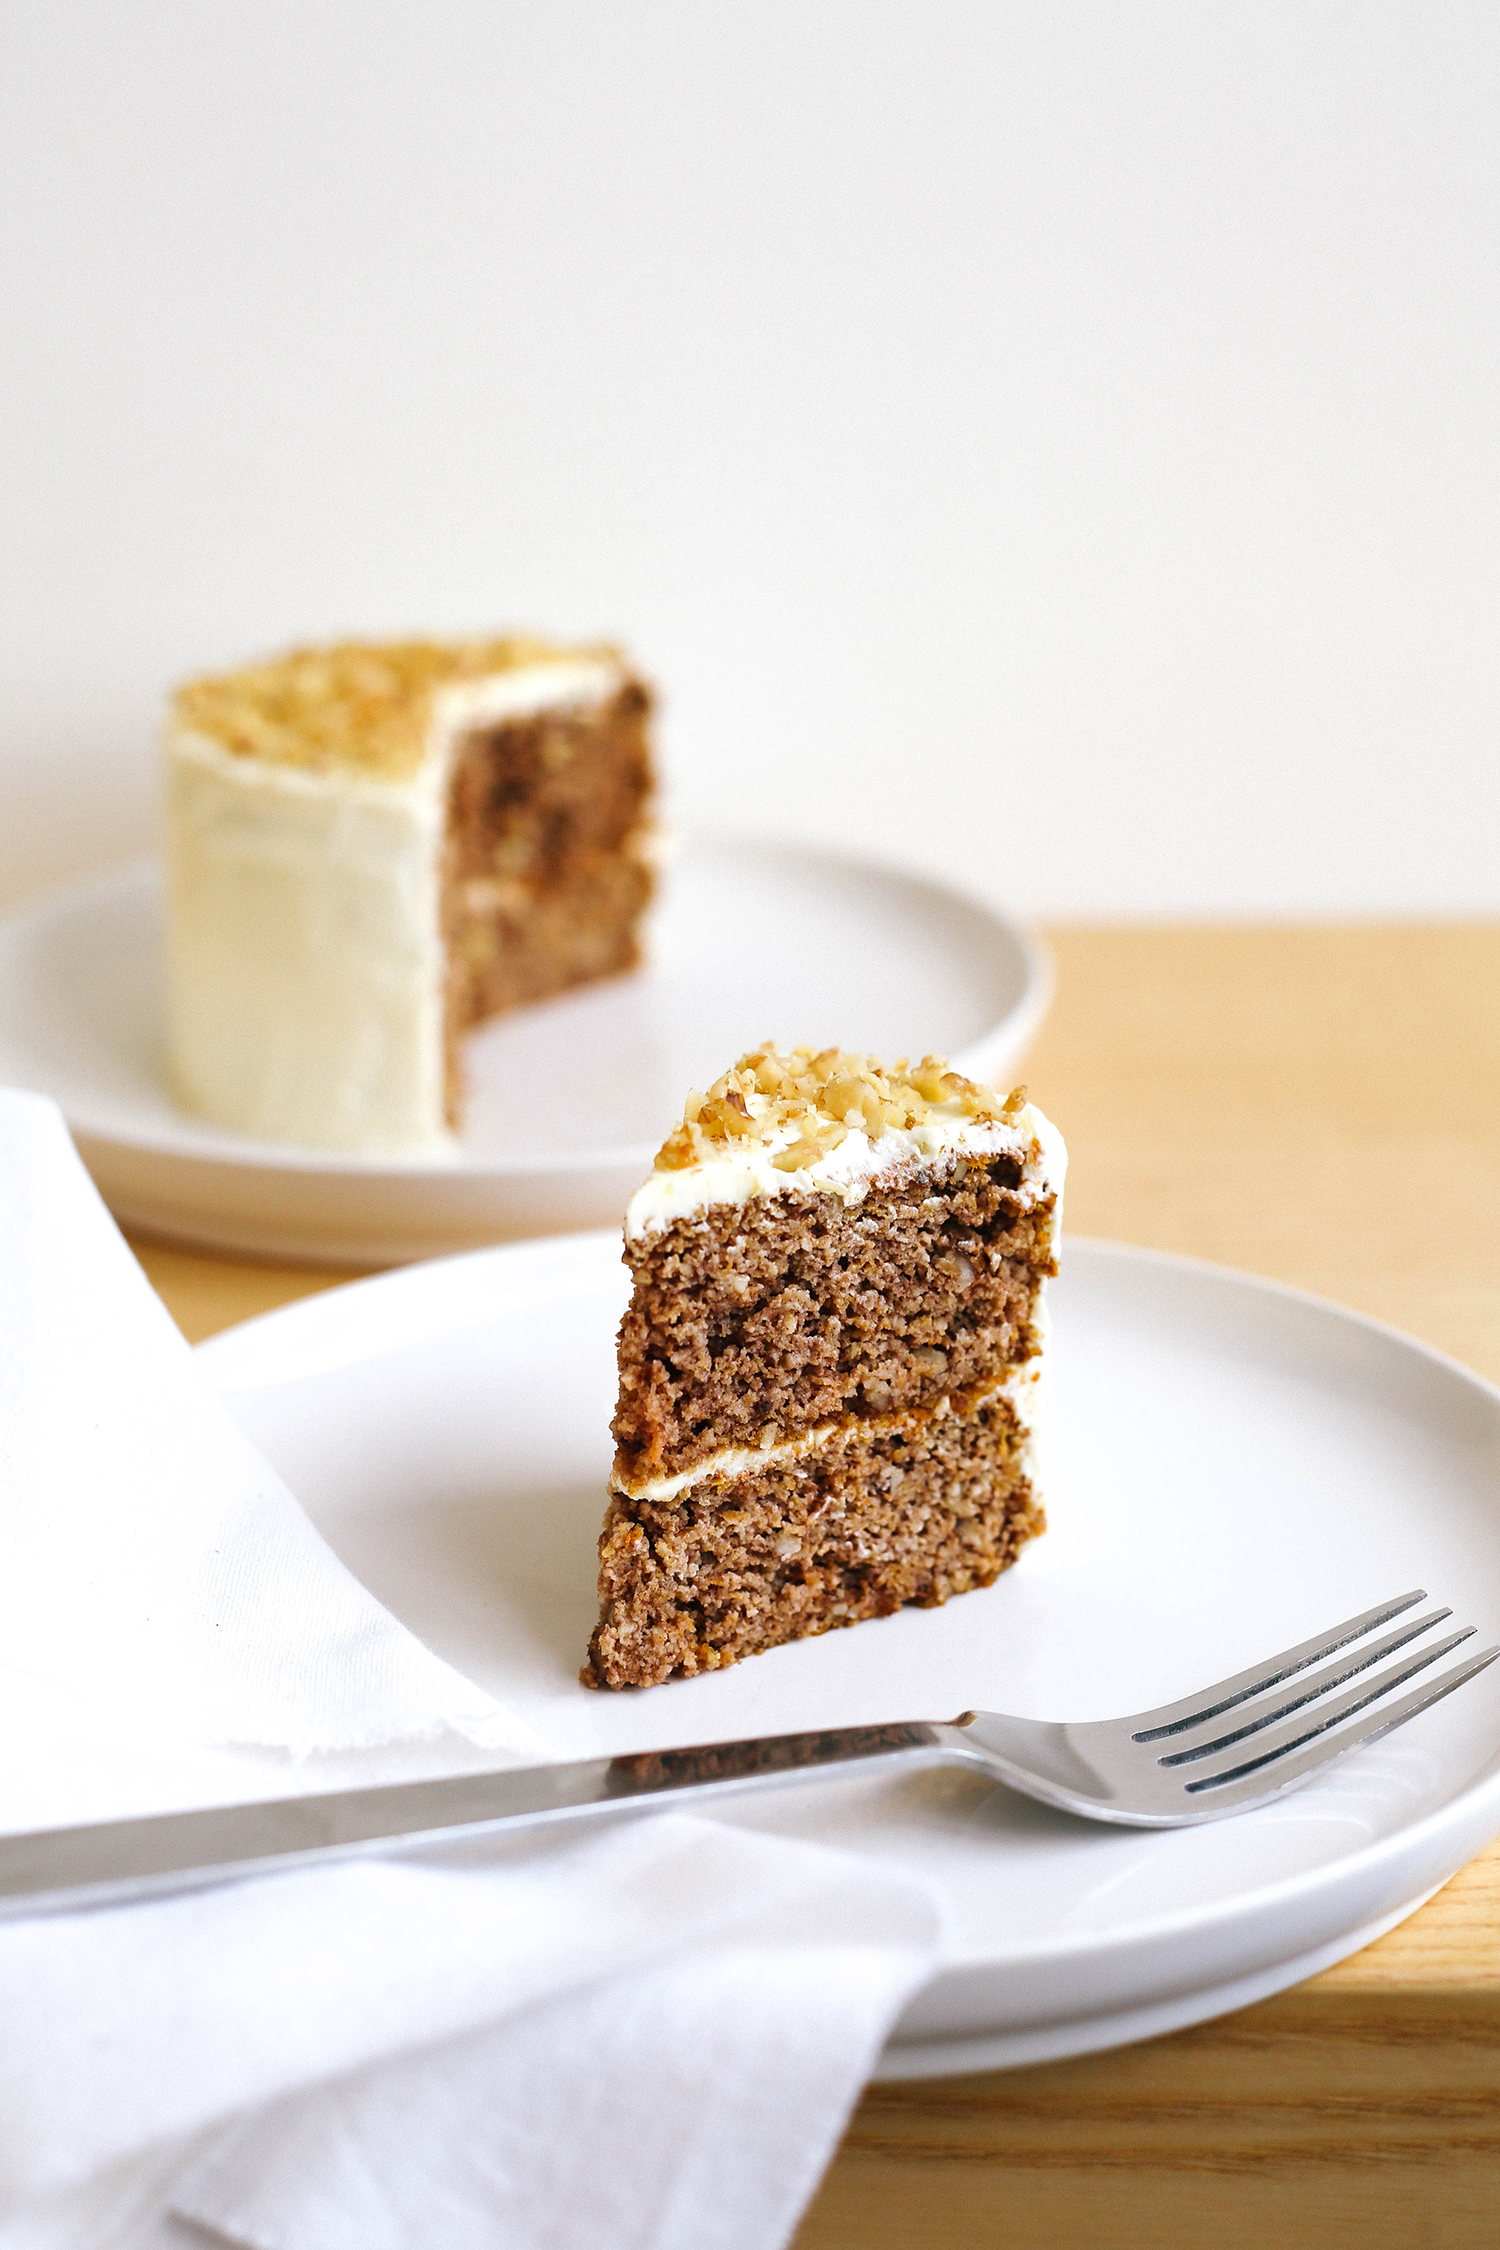 Keto Carrot Cake With Cream Cheese Frosting Low Carb Happy Keto